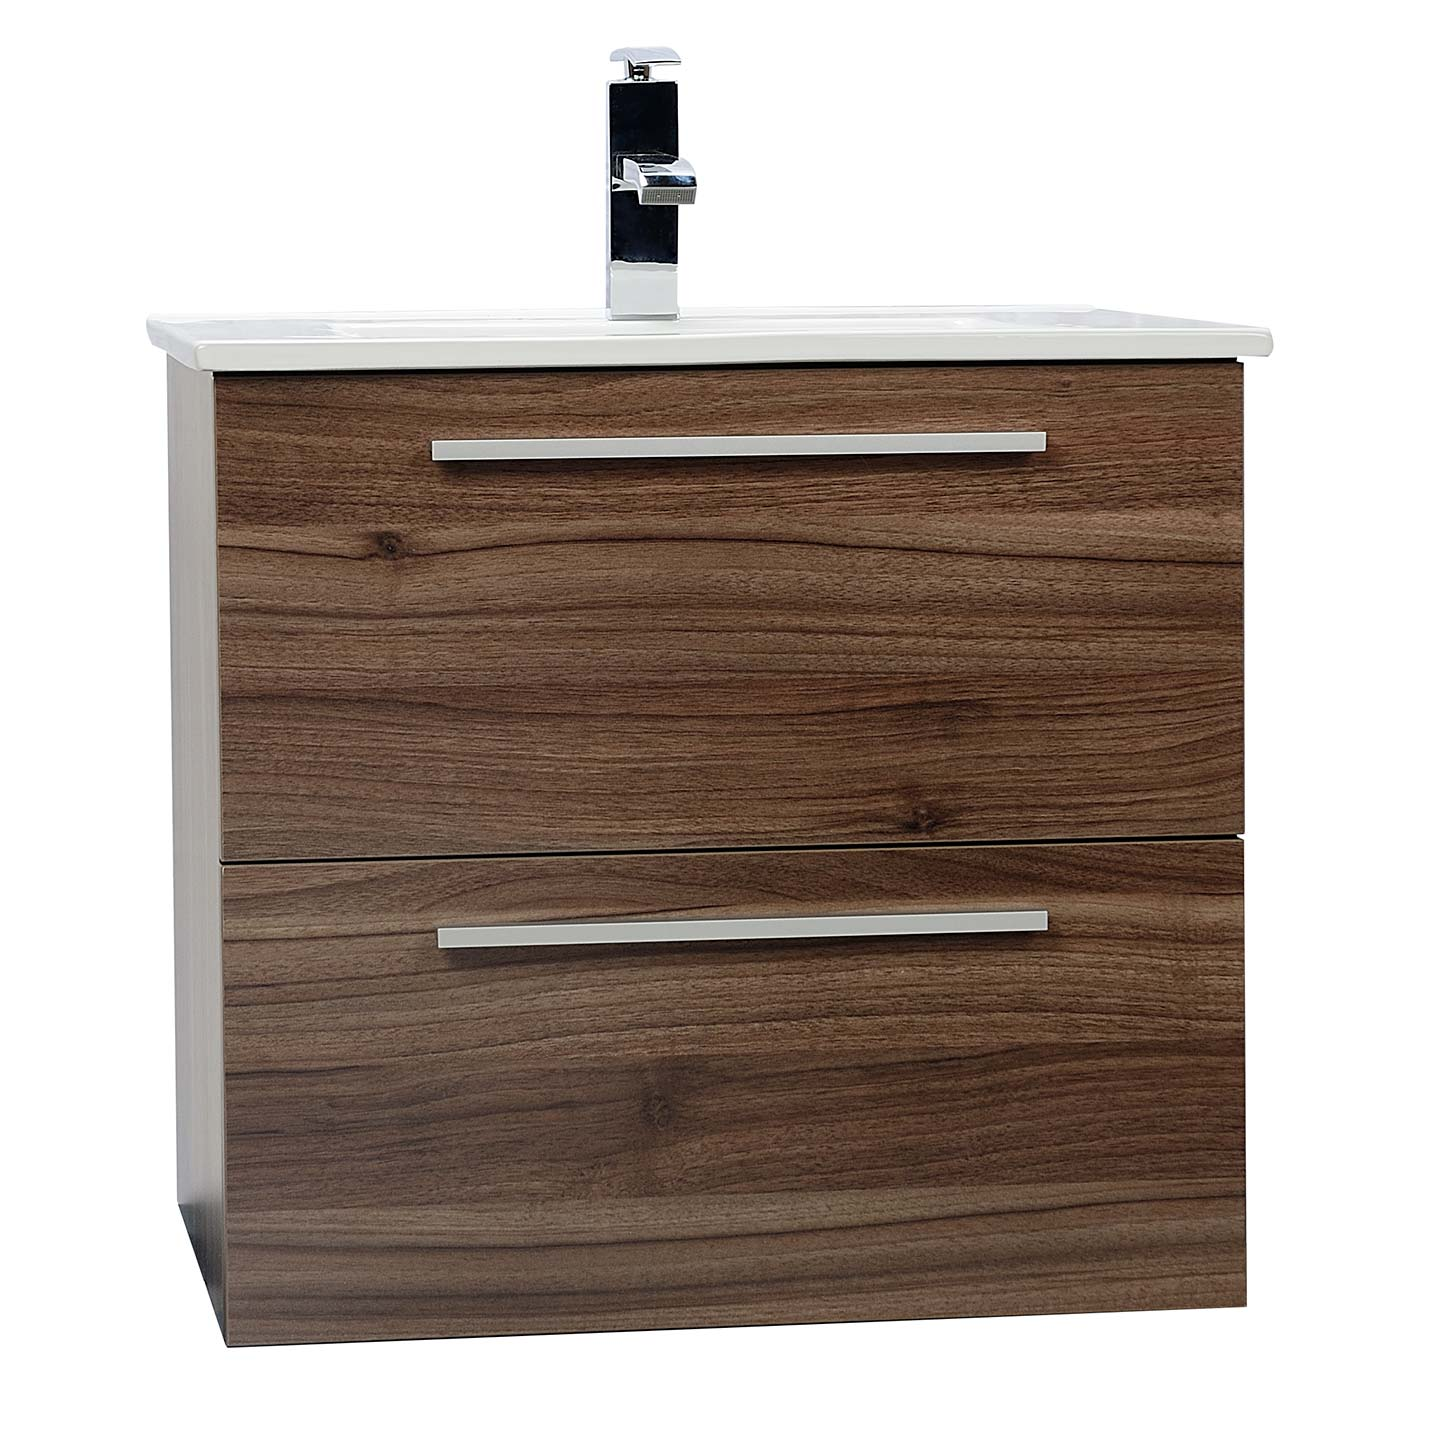 inch vanities tn set free mount wall bathroom shipping double camino vanity walnut modern wn